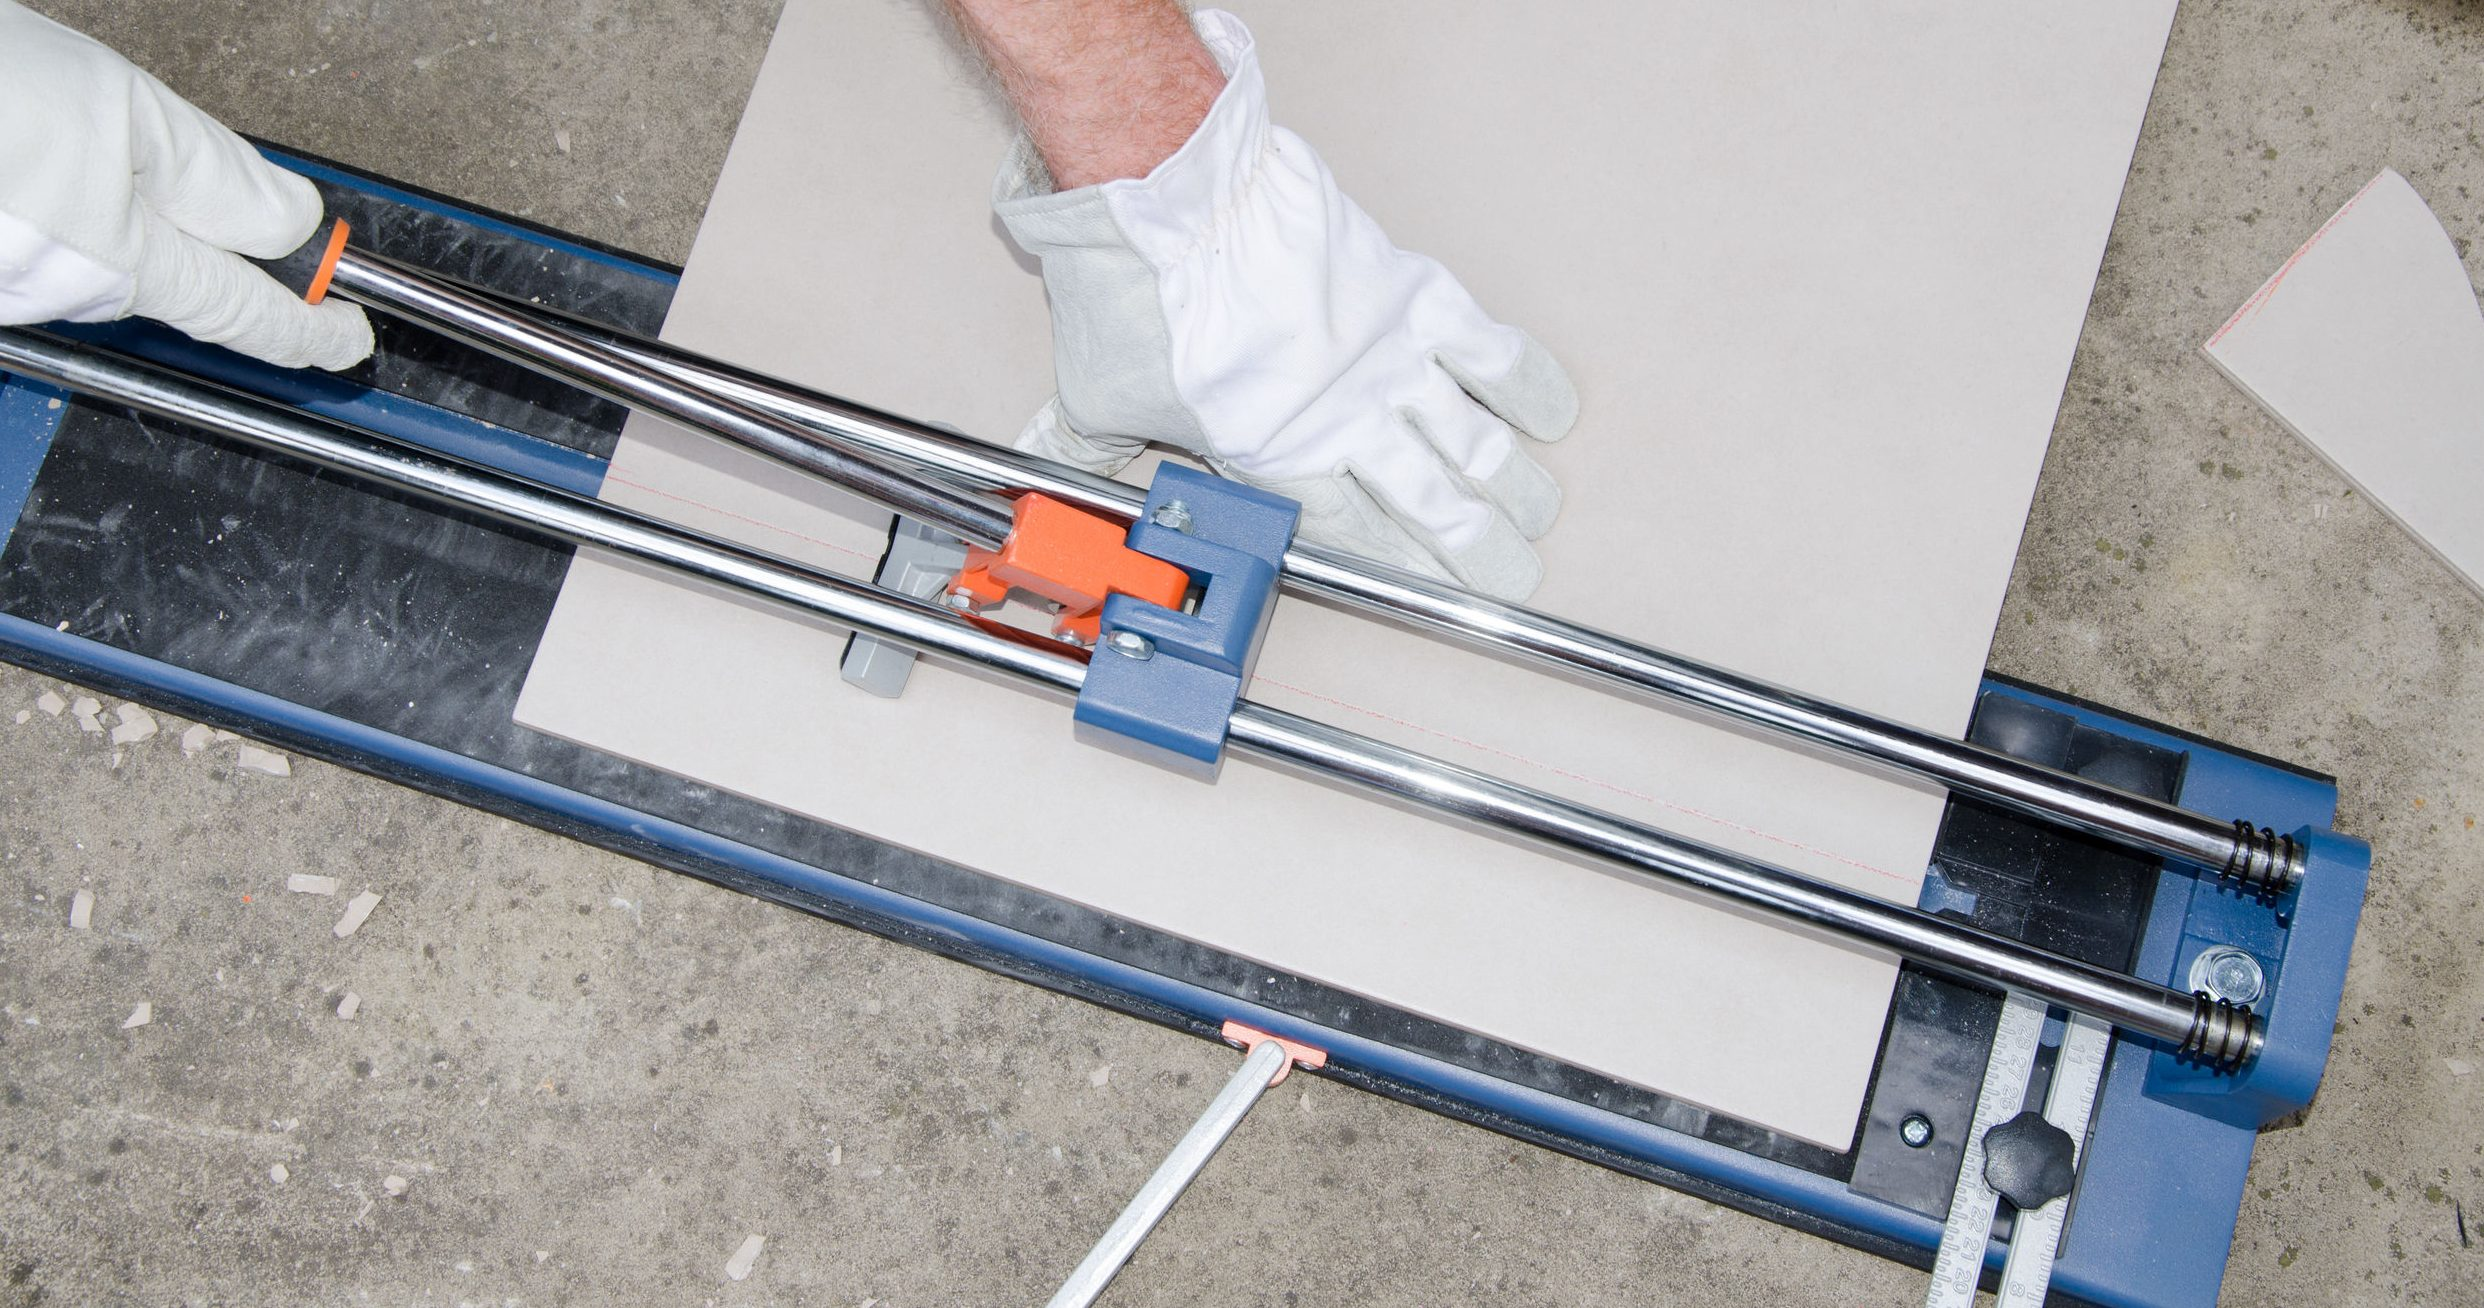 Laying floor tiles, tiler using a tile cutter